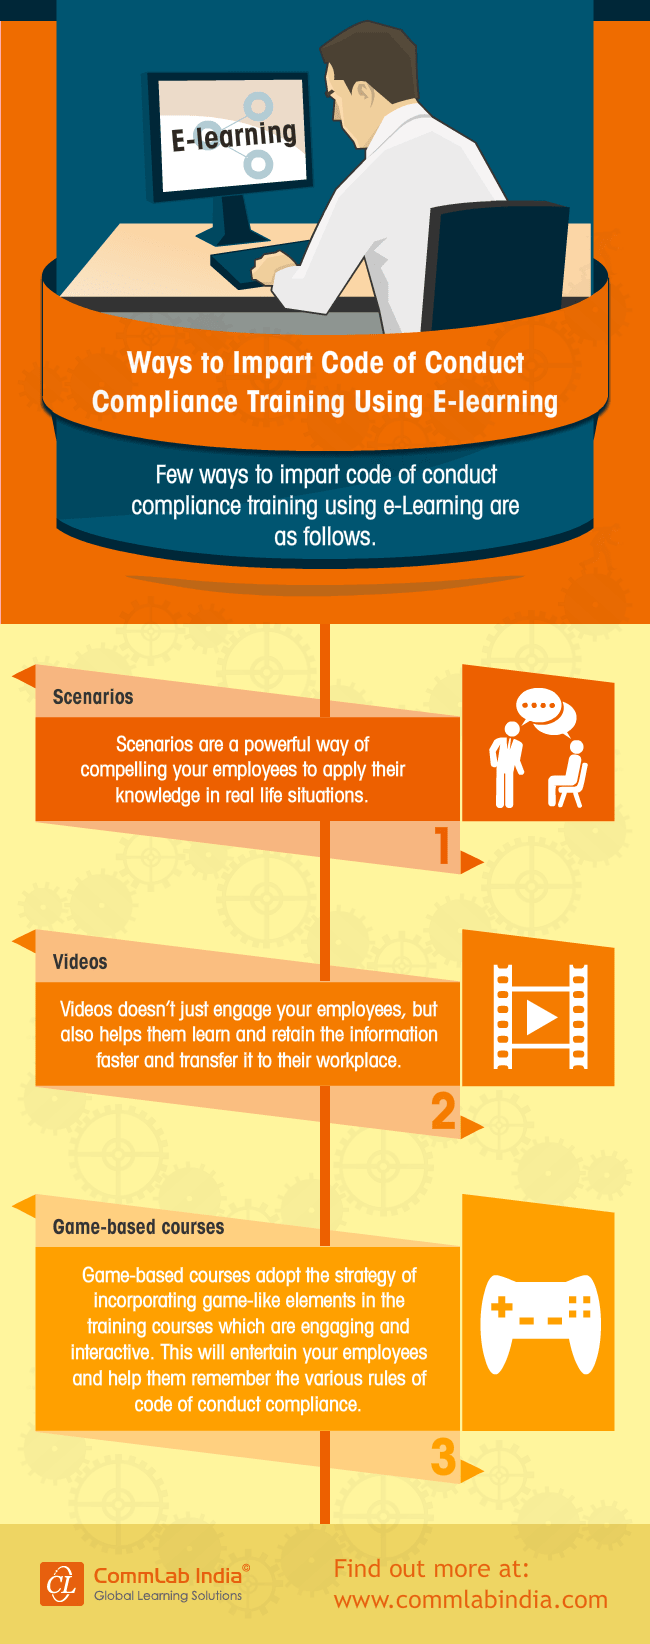 Ways to Impart Code of Conduct Compliance Training Using E-Learning [Infographic]